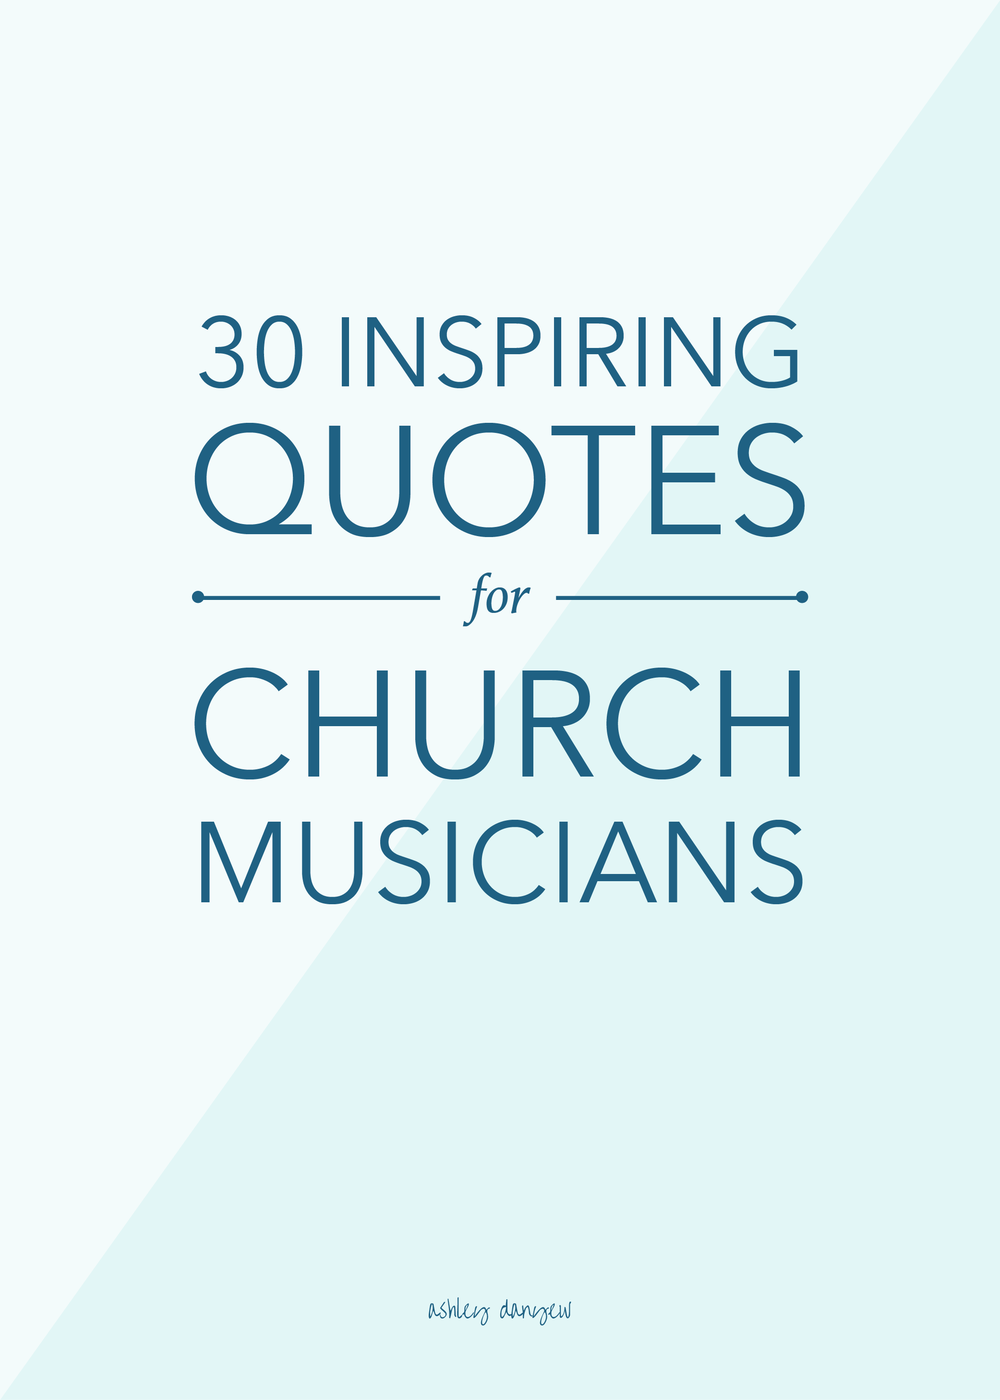 30-Inspiring-Quotes-for-Church-Musicians-01.png